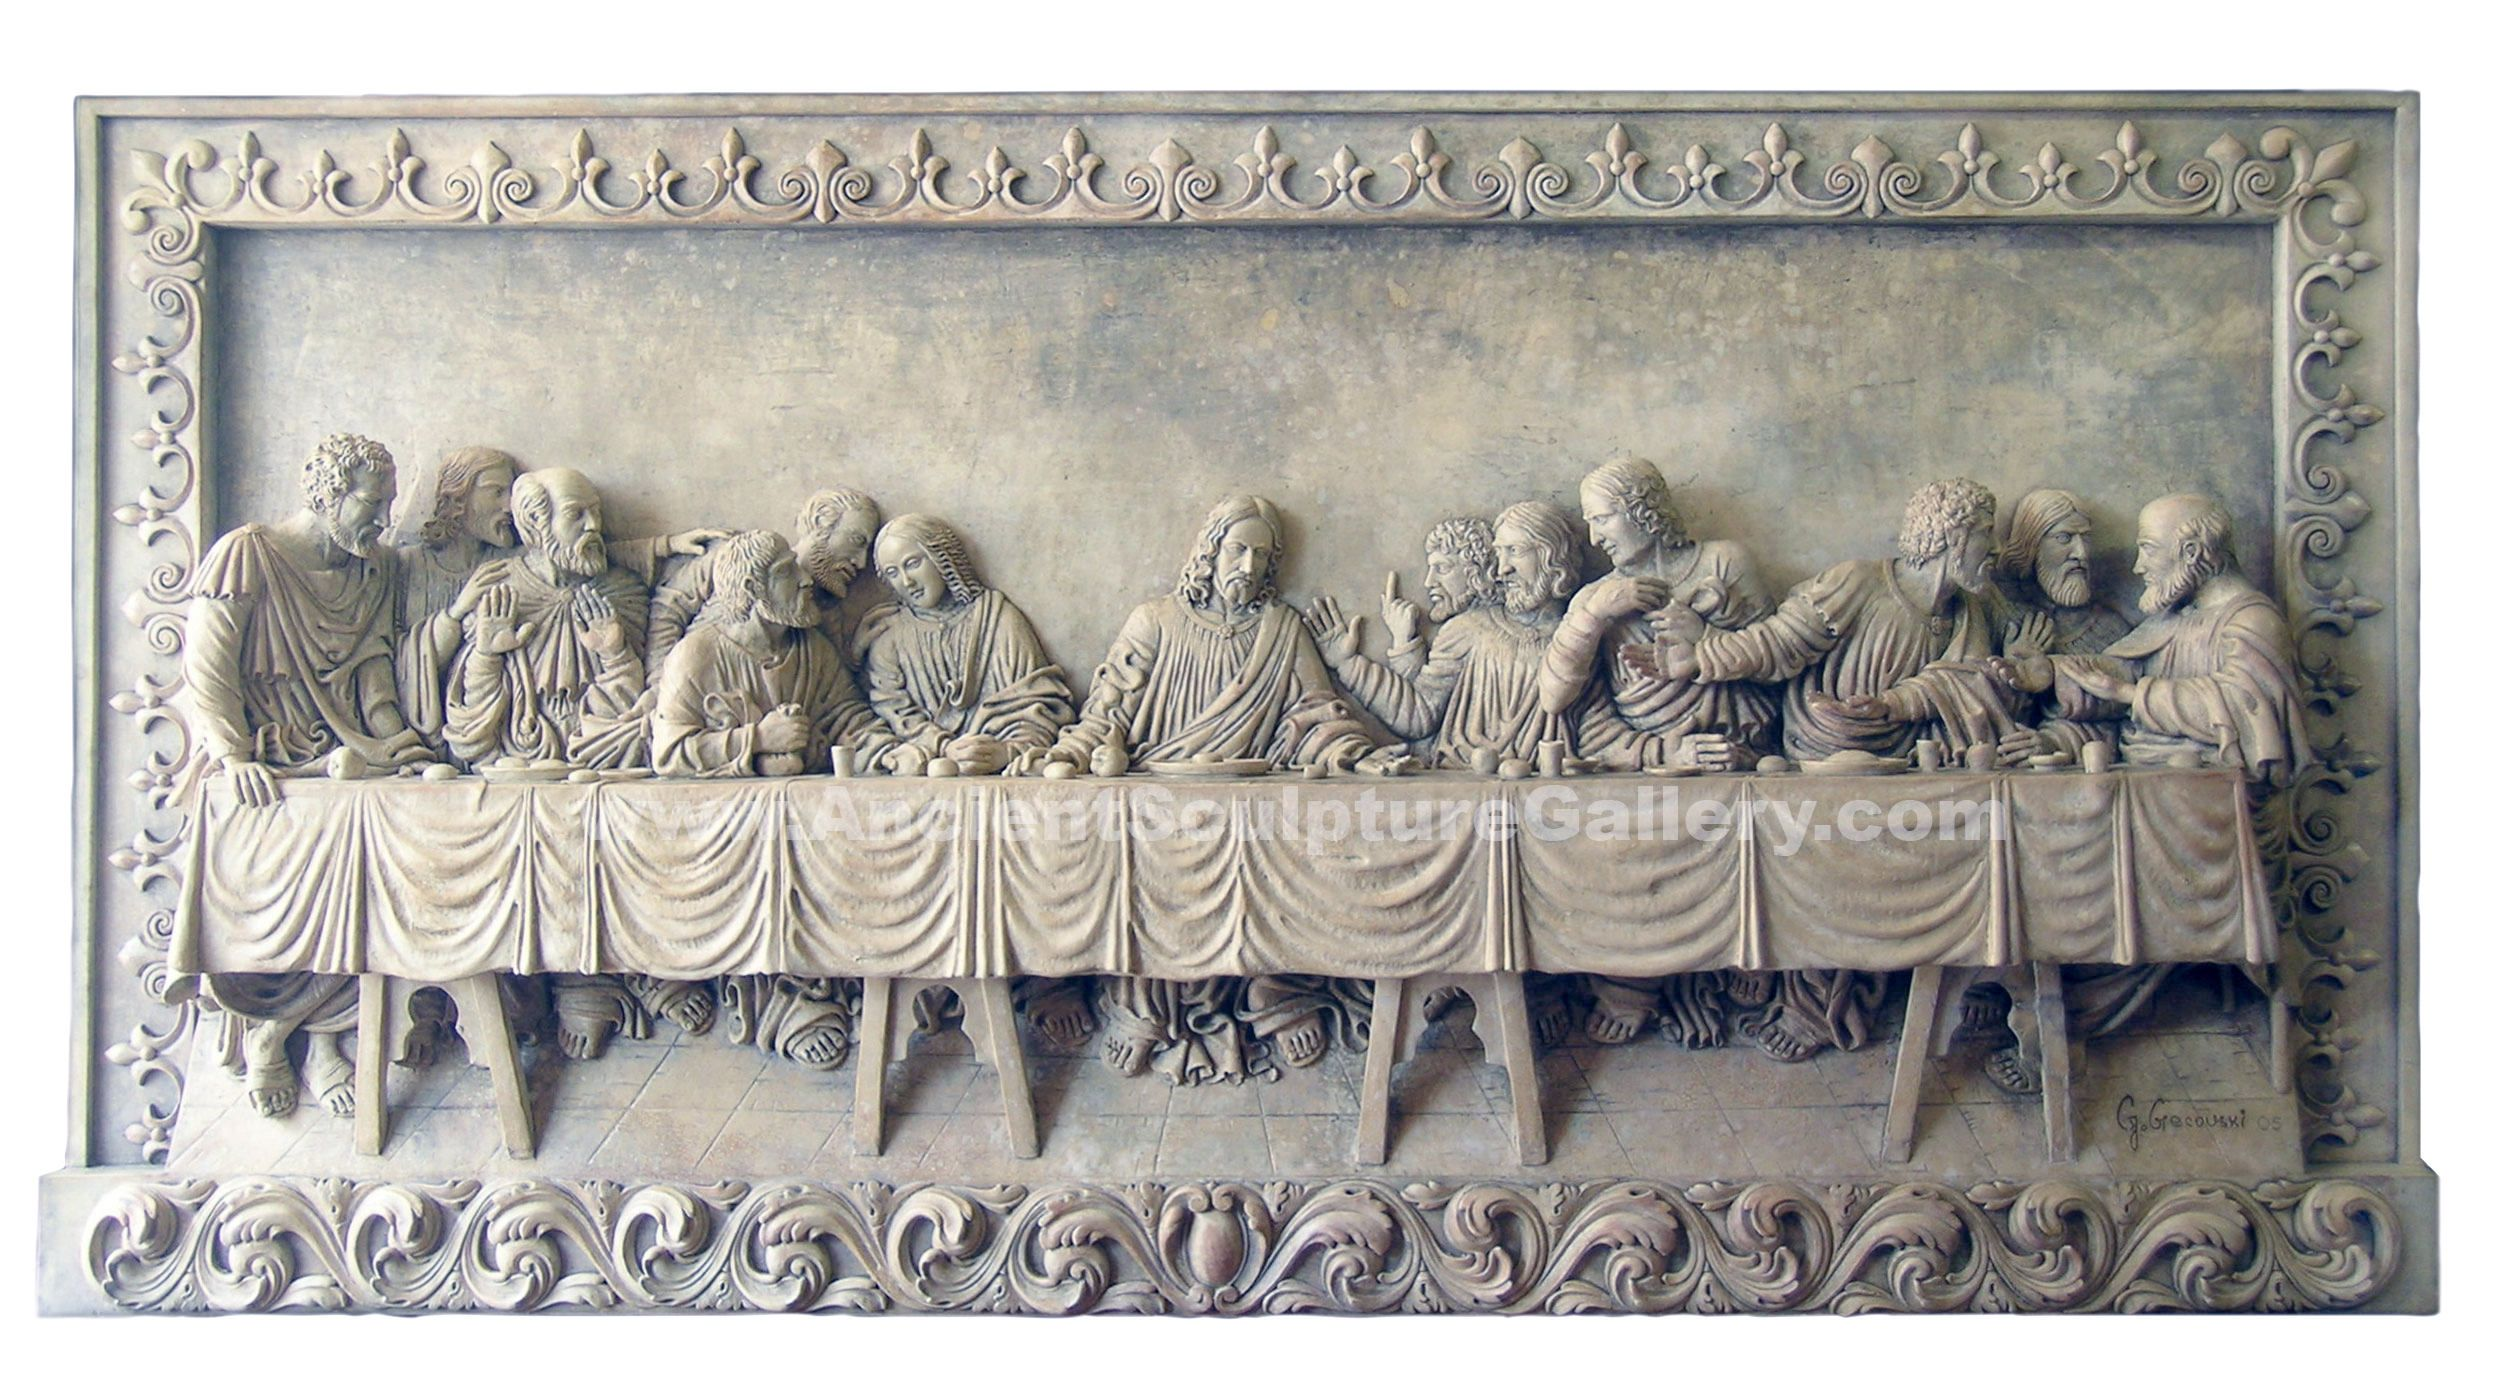 The Last Supper Huge Sculpture Relief Plaque By Leonardo Da Etsy Last Supper Hand Sculpture Sculpture